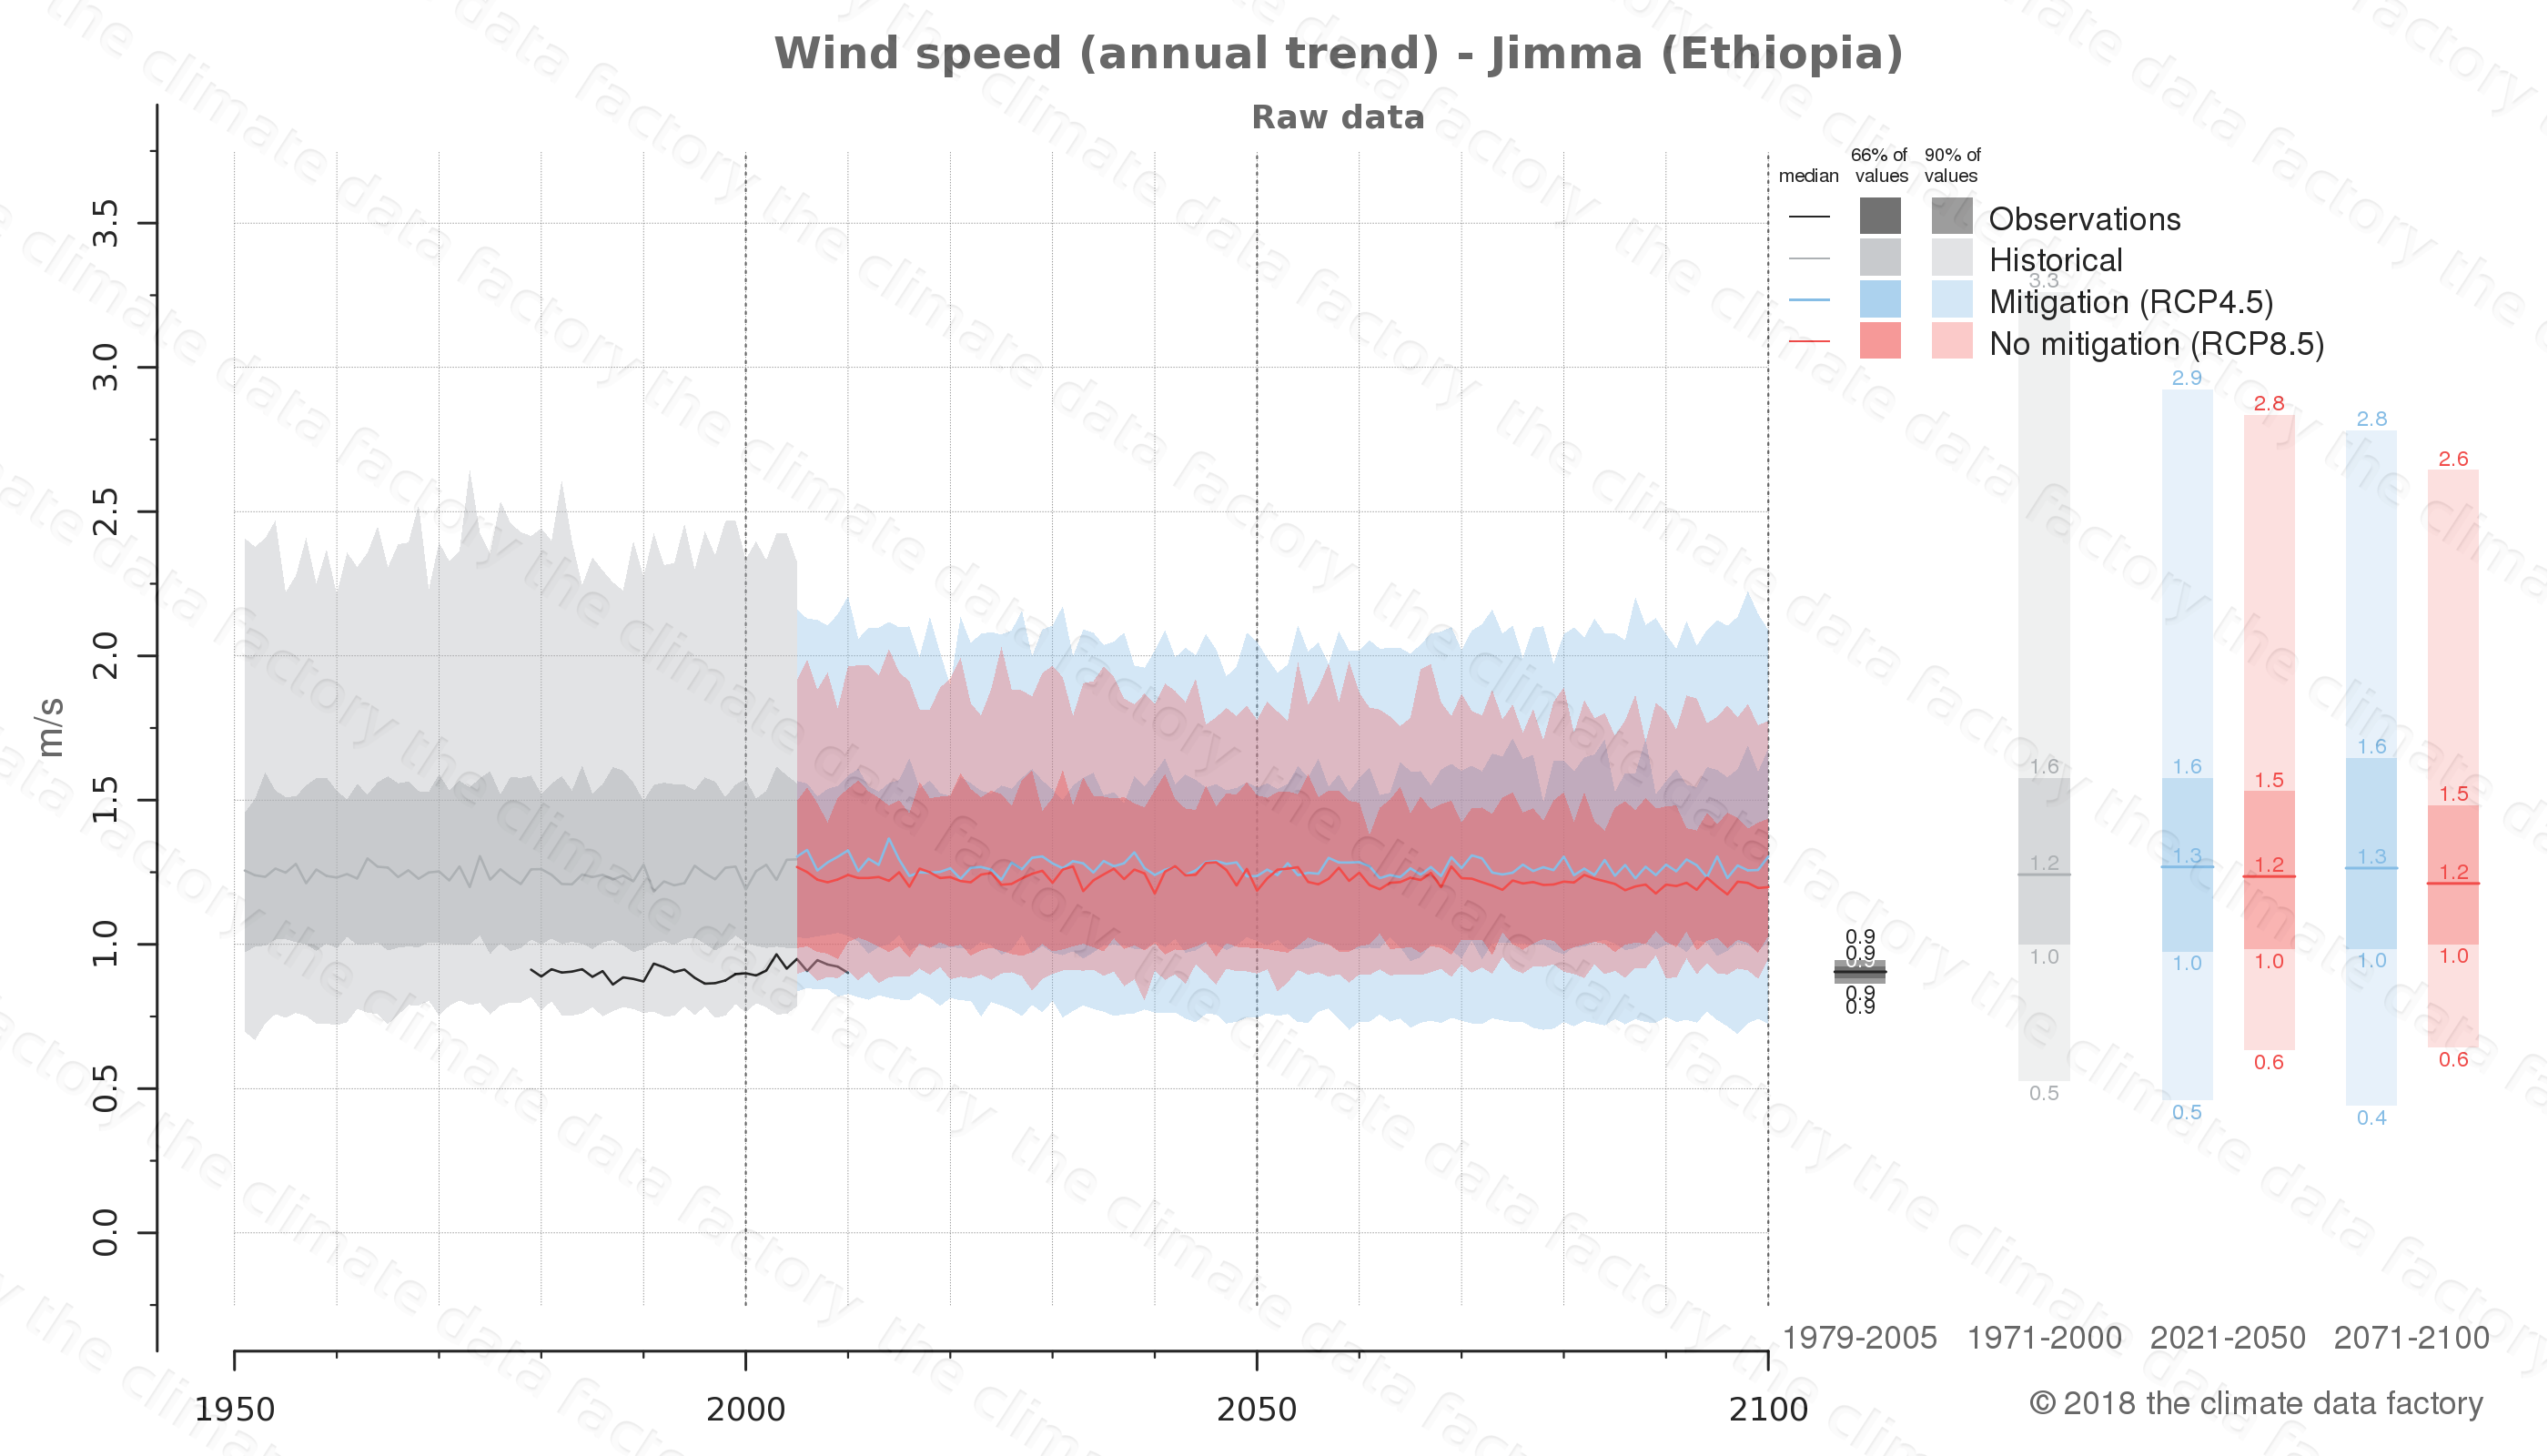 climate change data policy adaptation climate graph city data wind-speed jimma ethiopia